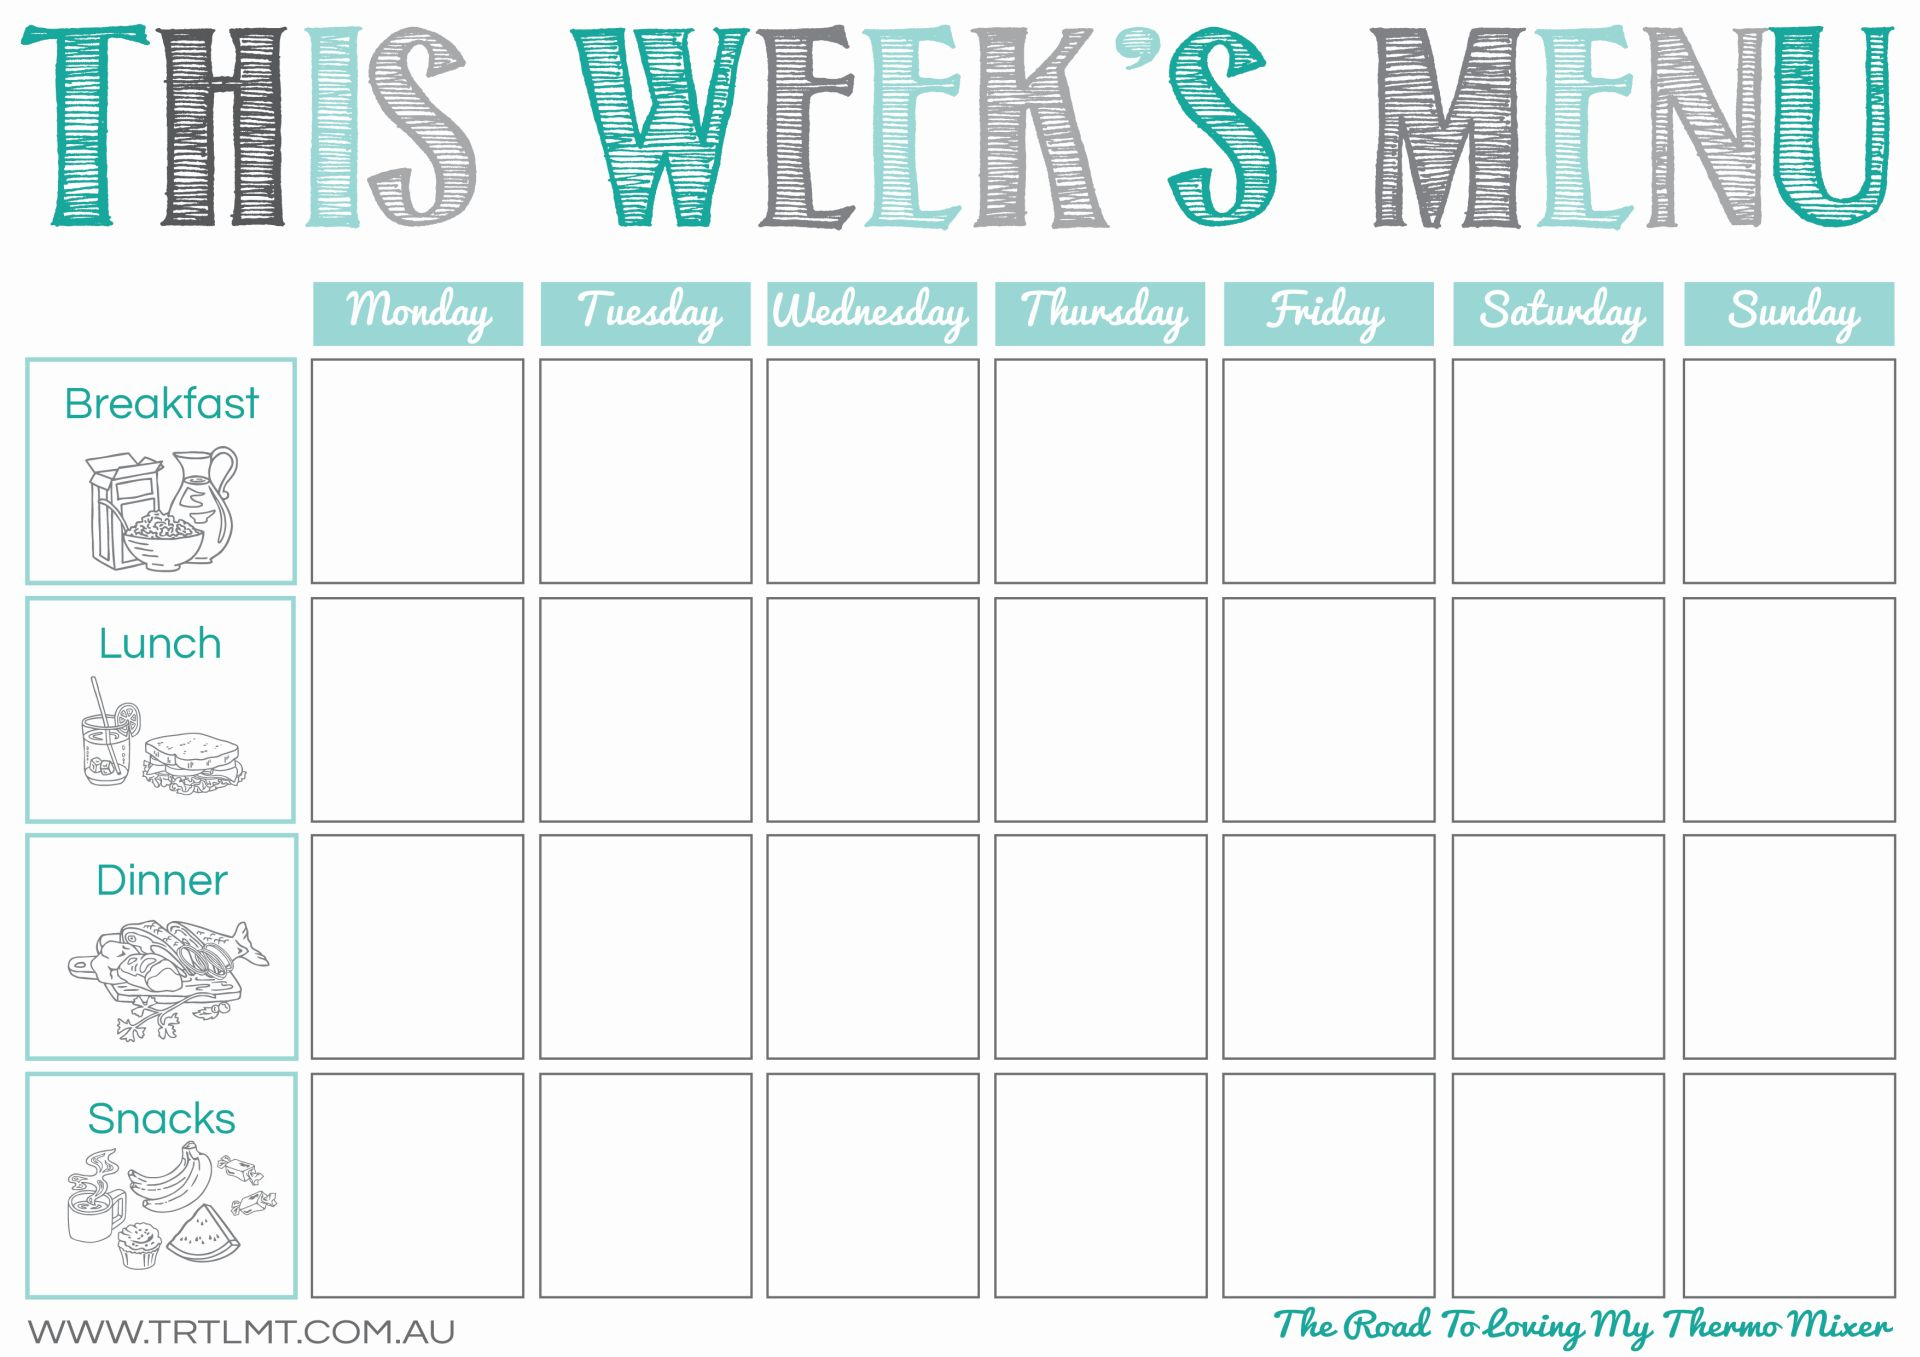 This is a photo of Comprehensive Printable Weekly Menu